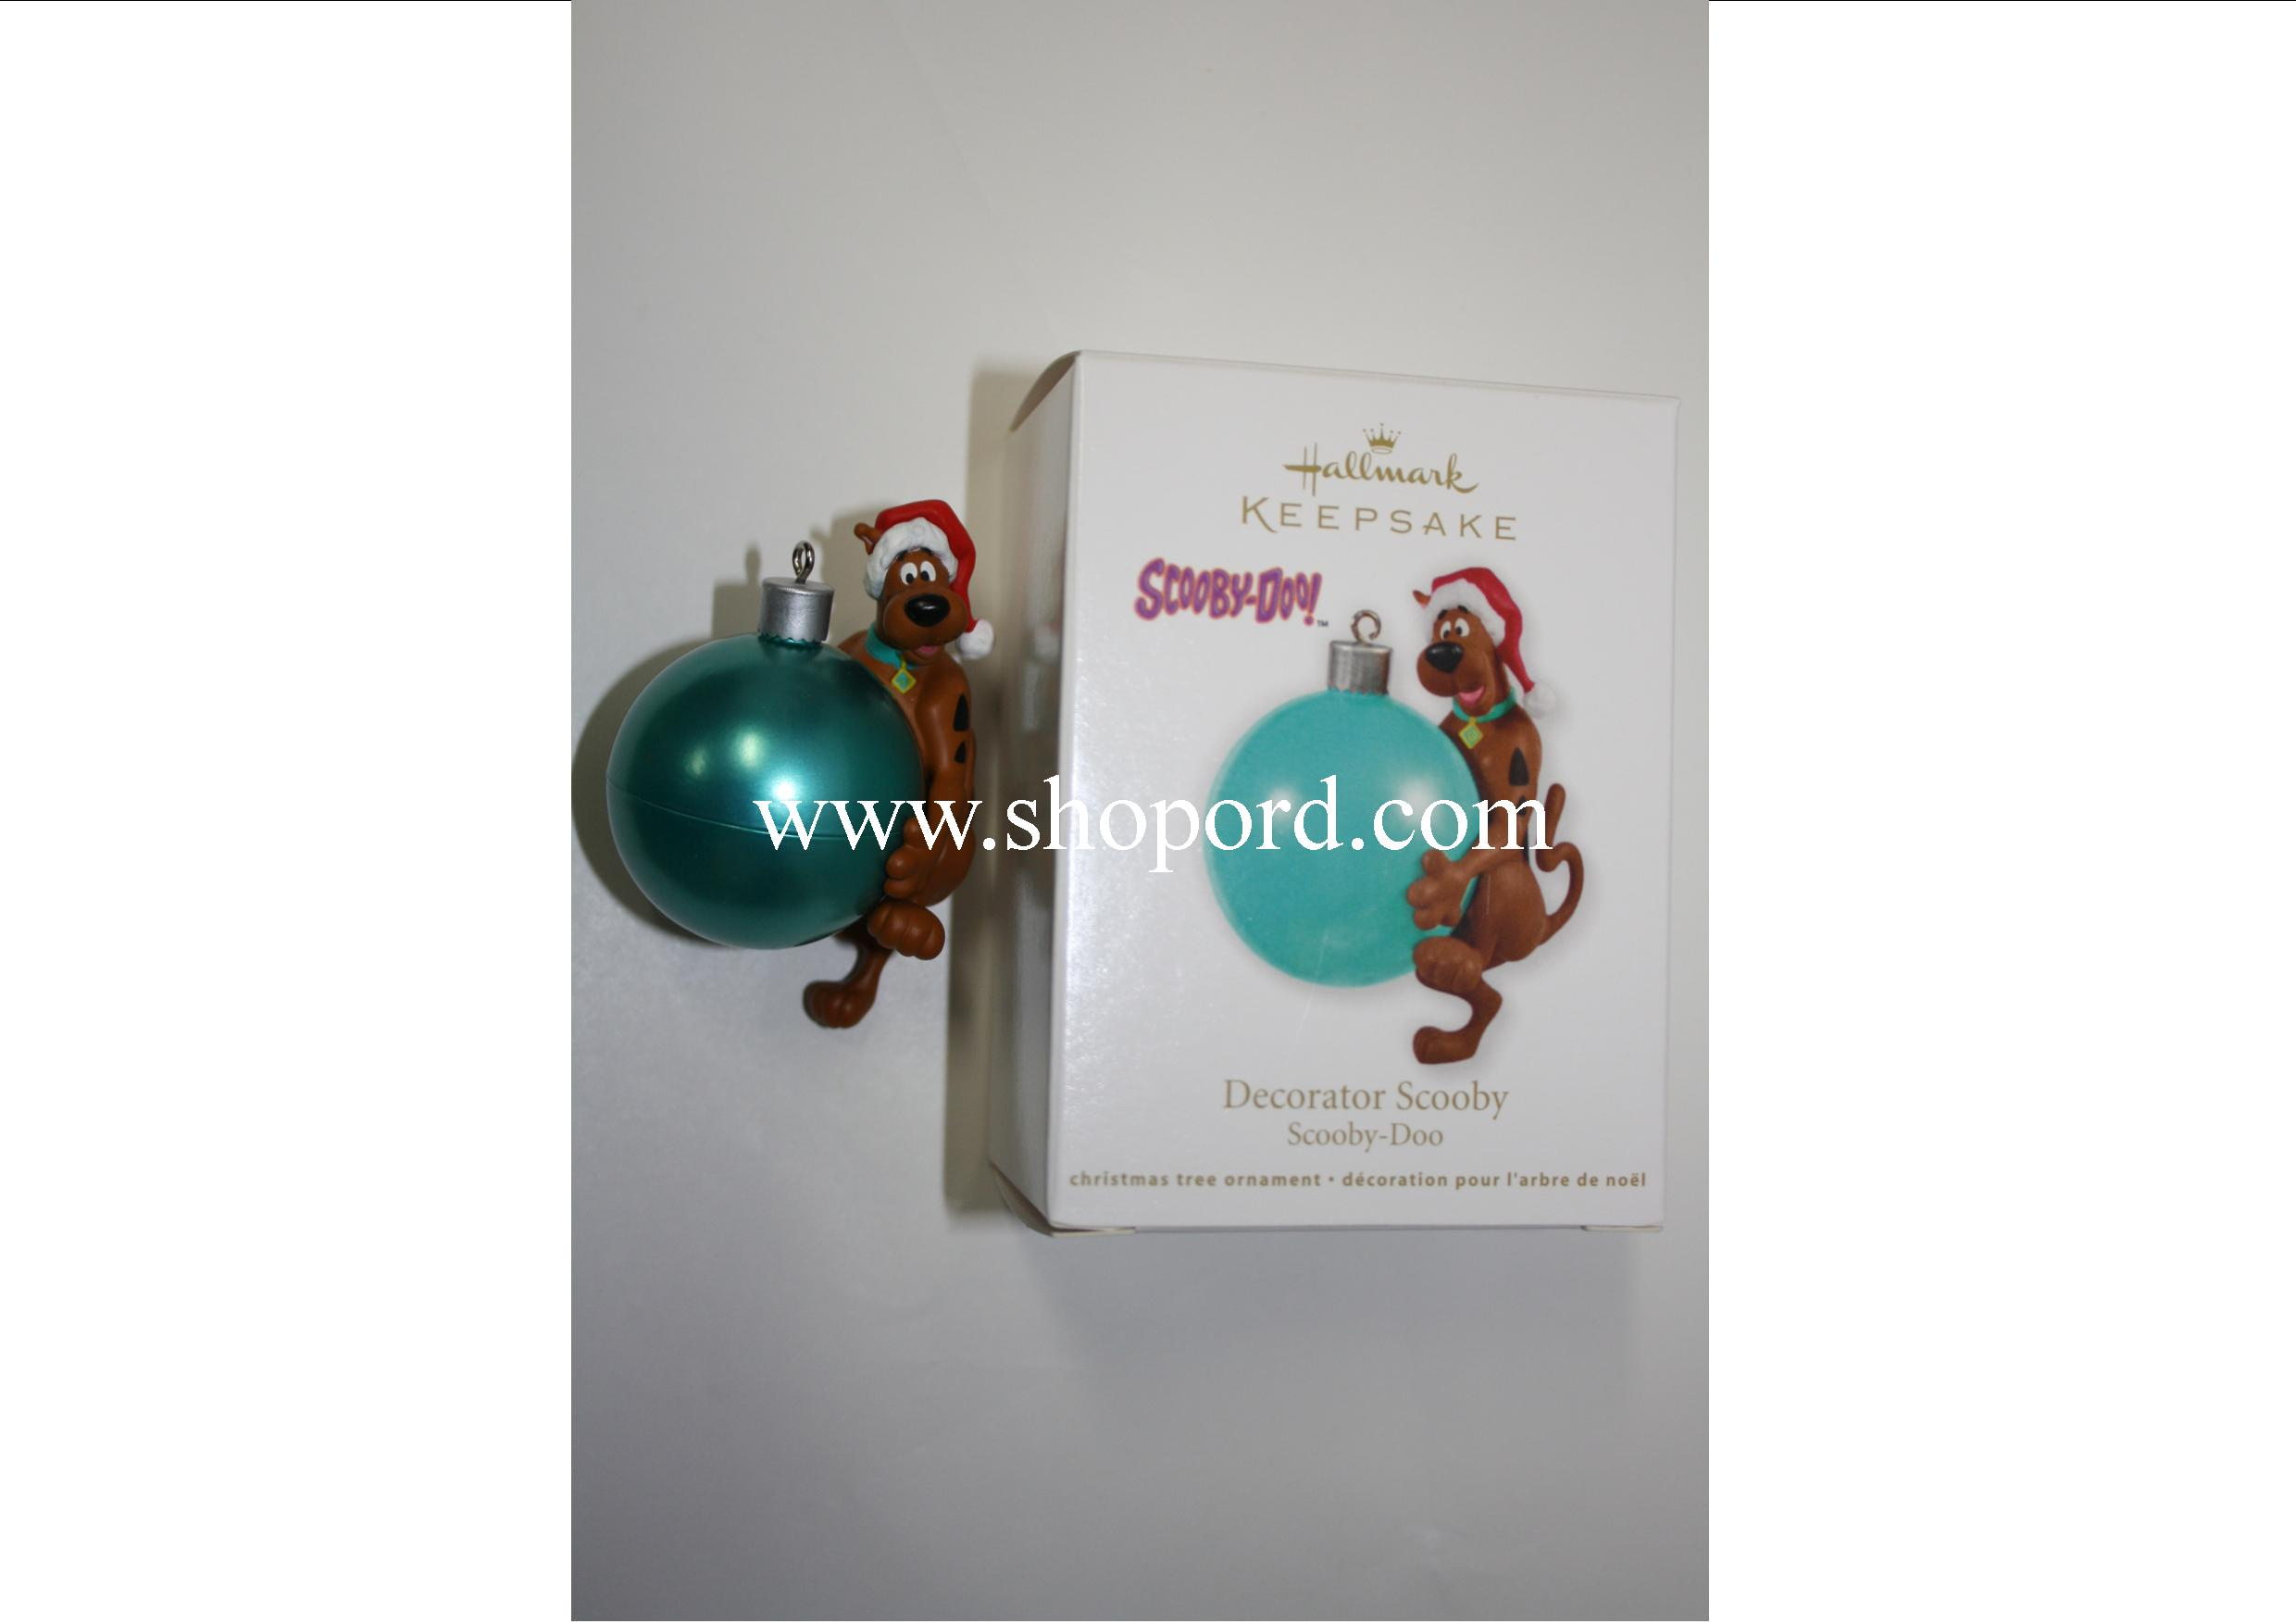 Hallmark 2011 Decorator Scooby Ornament Scooby Doo QXI2407